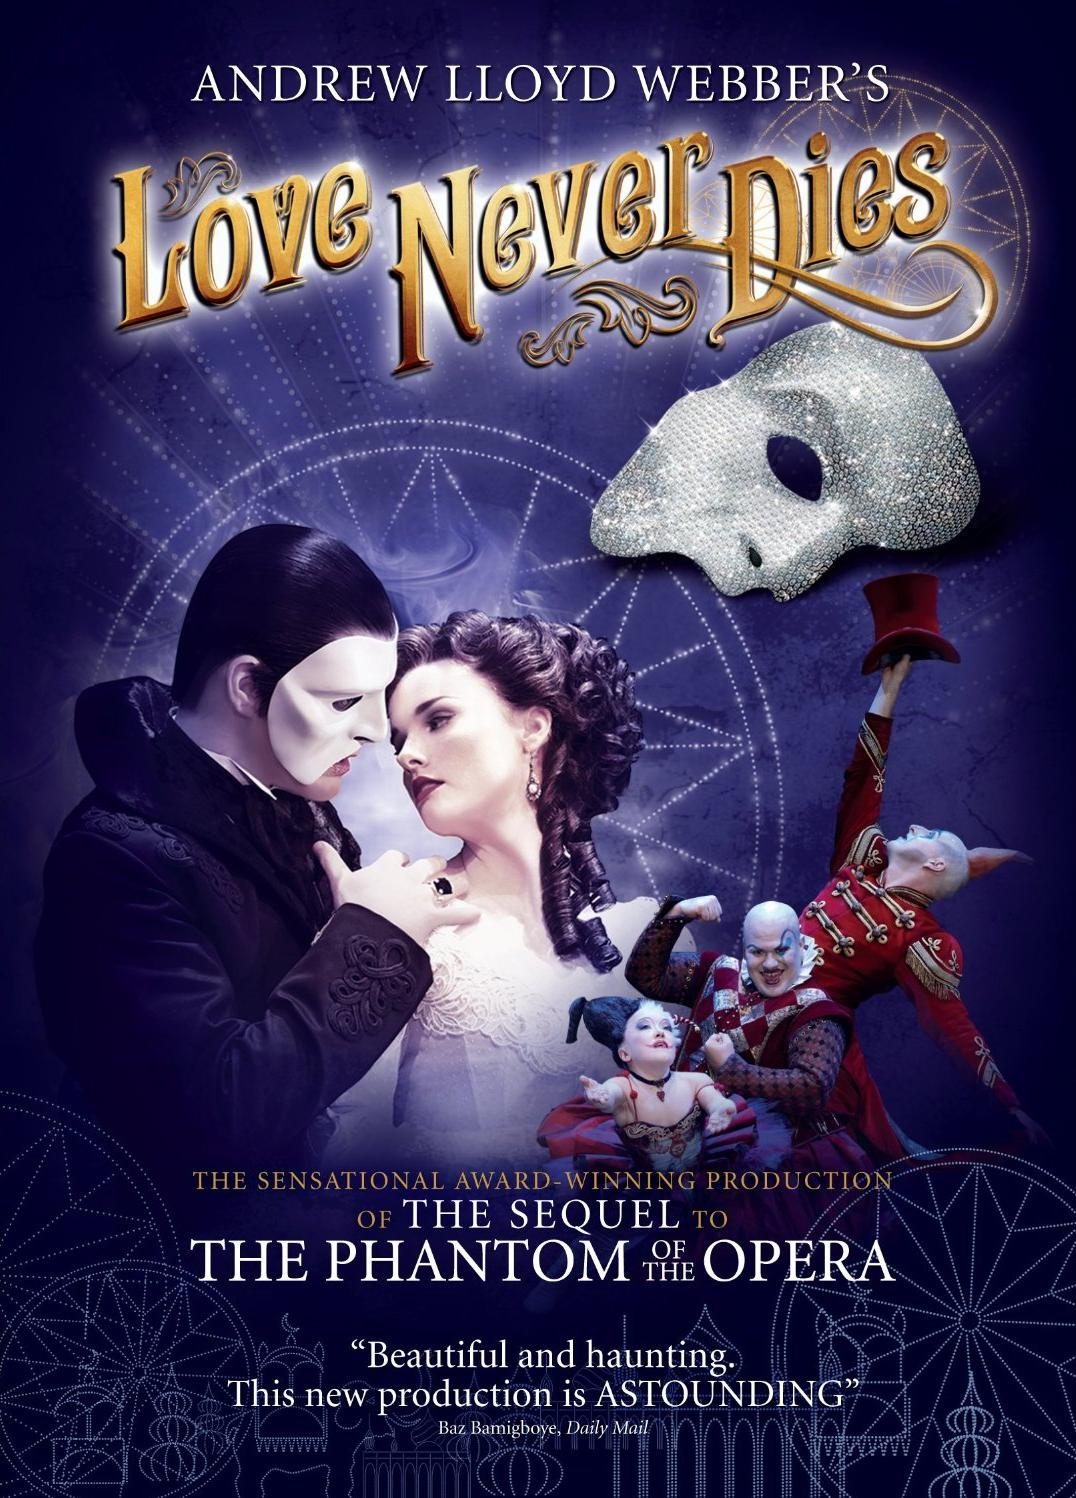 LOVE NEVER DIES Special Interview: Glenn Slater